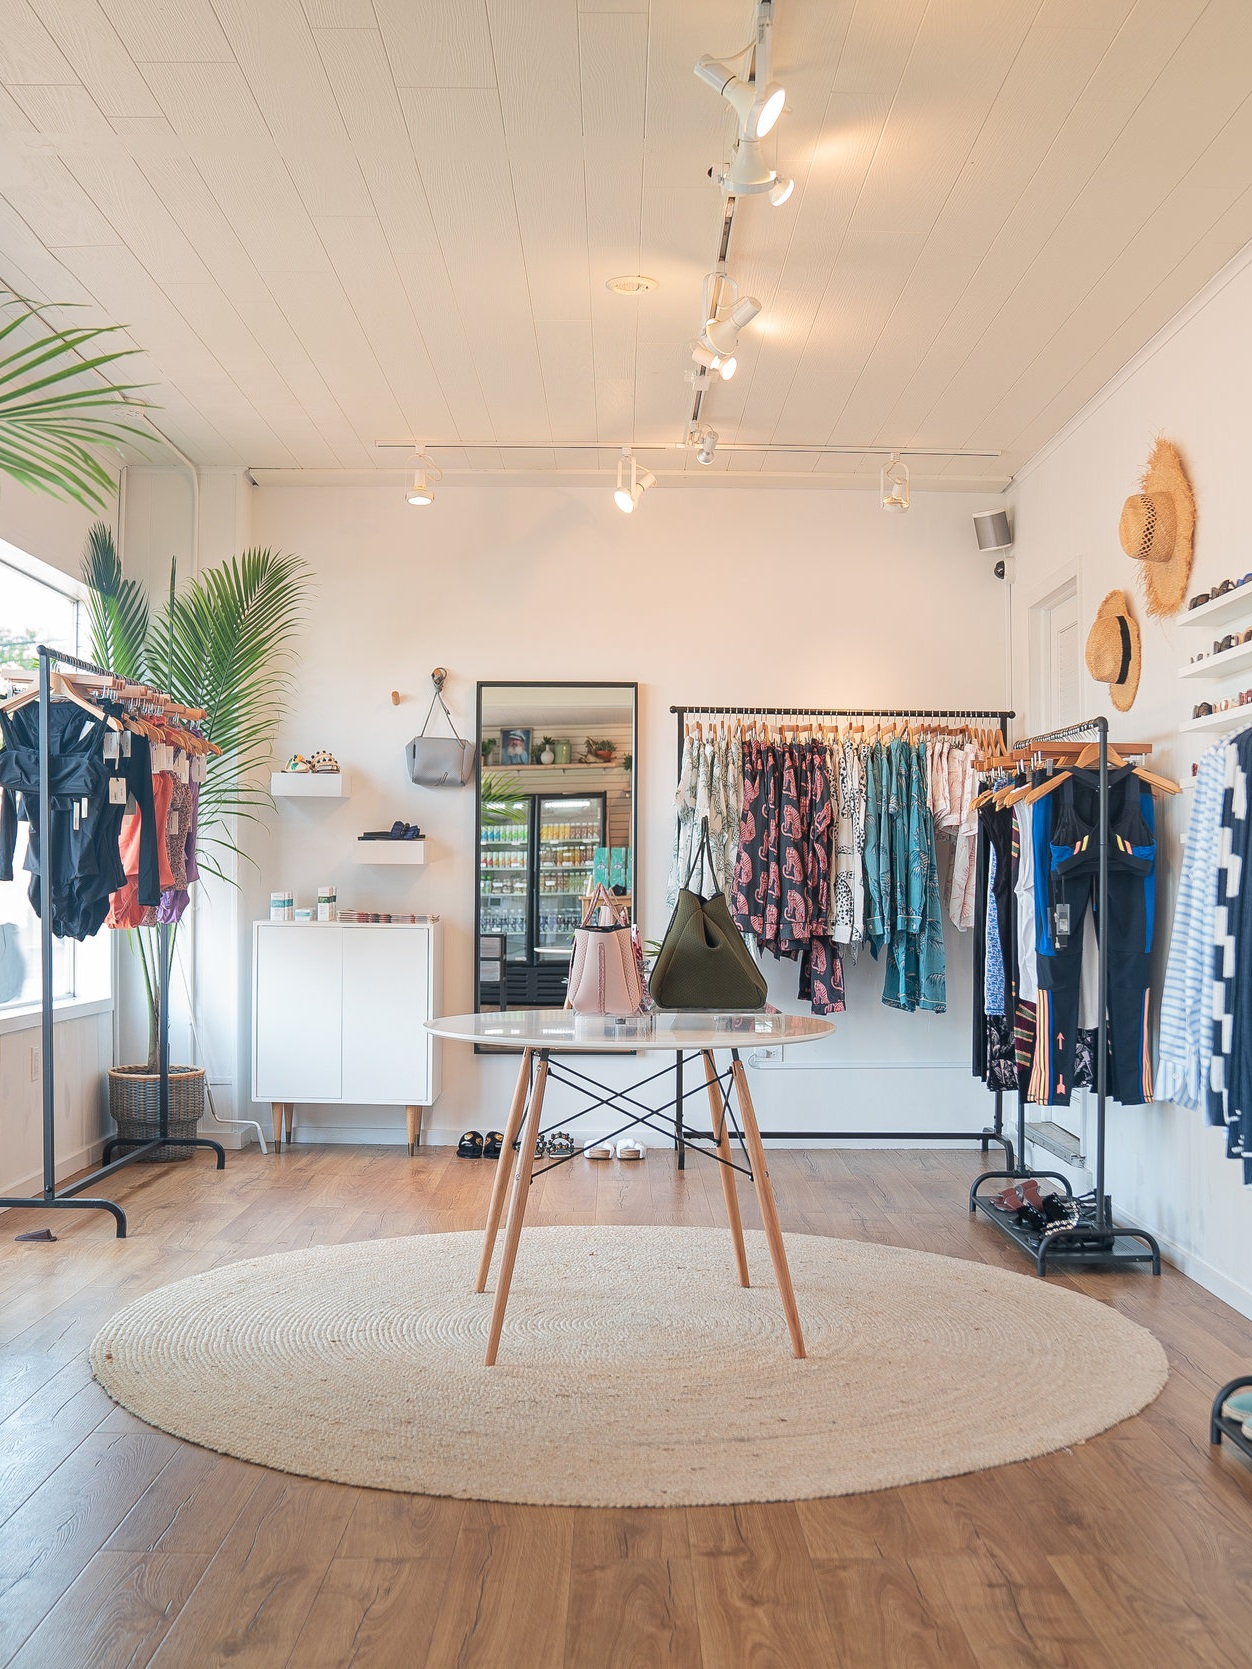 """The success of Australian labels internationally is based on having great networks. The collaboration with Bluestone Lane provides a unique opportunity for our designers to connect with the US fashion community and consumers, where long-term relationships can be built"" - David Giles-Kaye, Australian Fashion Council CEO."